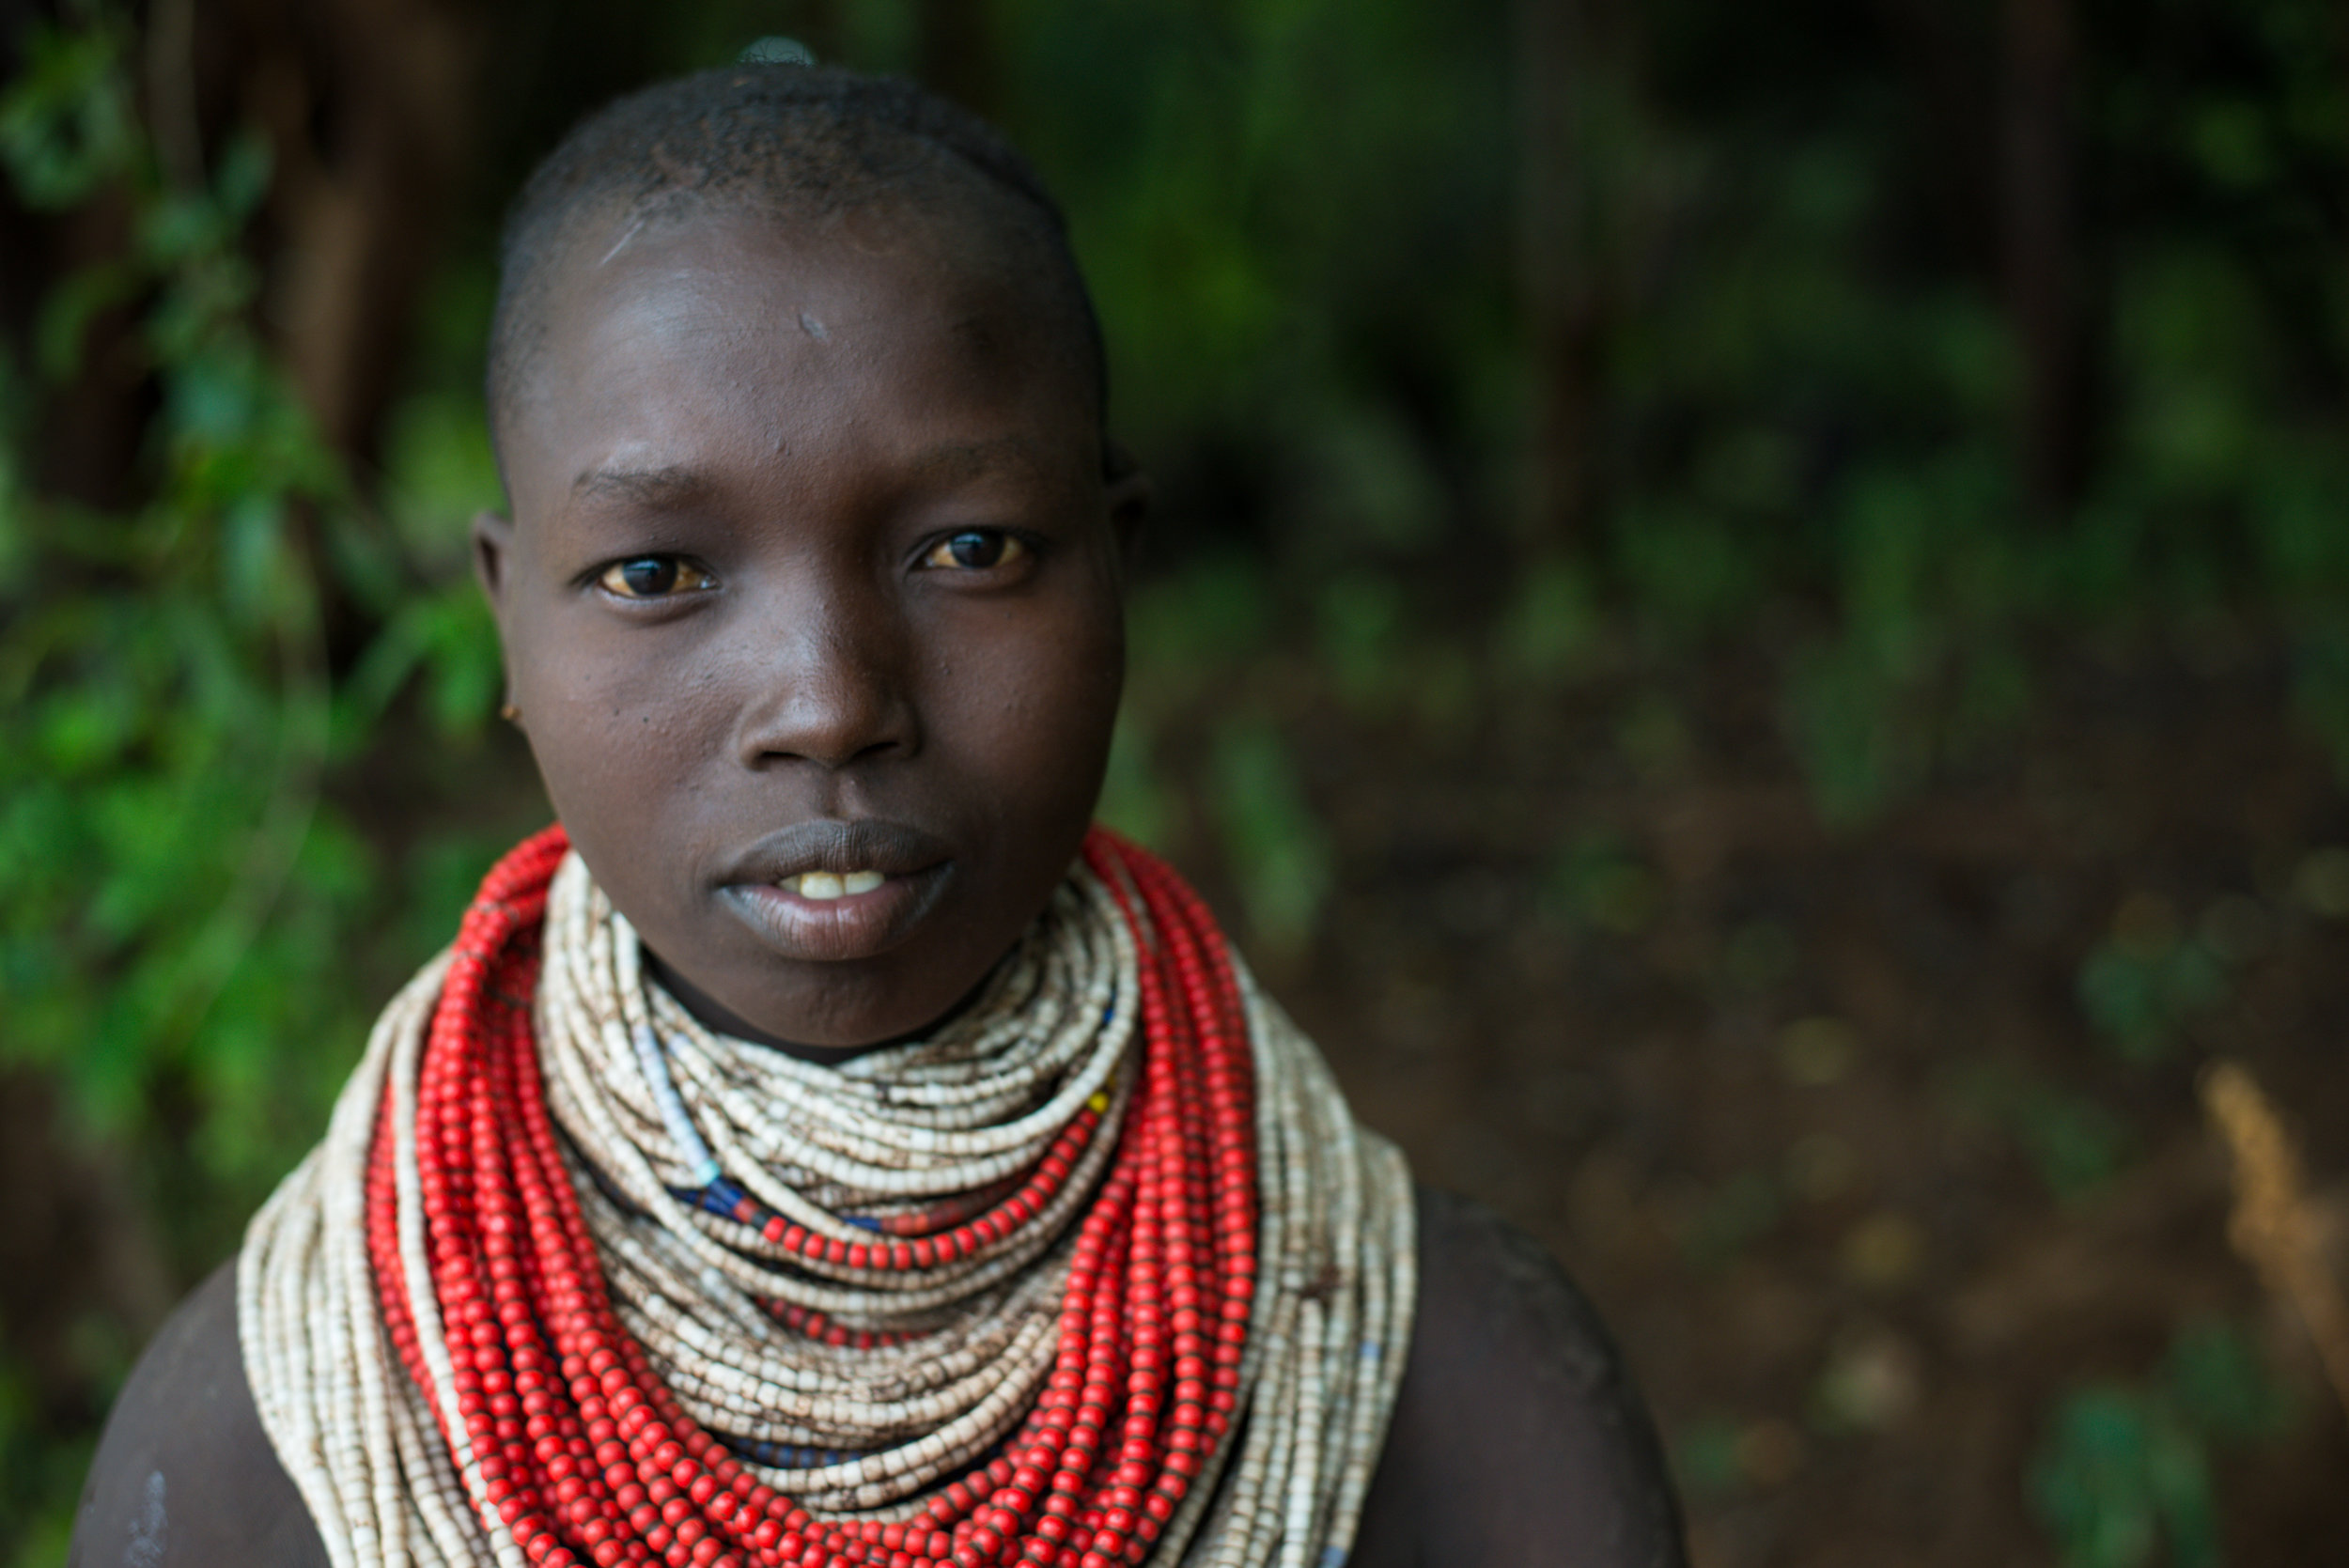 OMO RIVER VALLEY - ETHIOPIA, KENYA